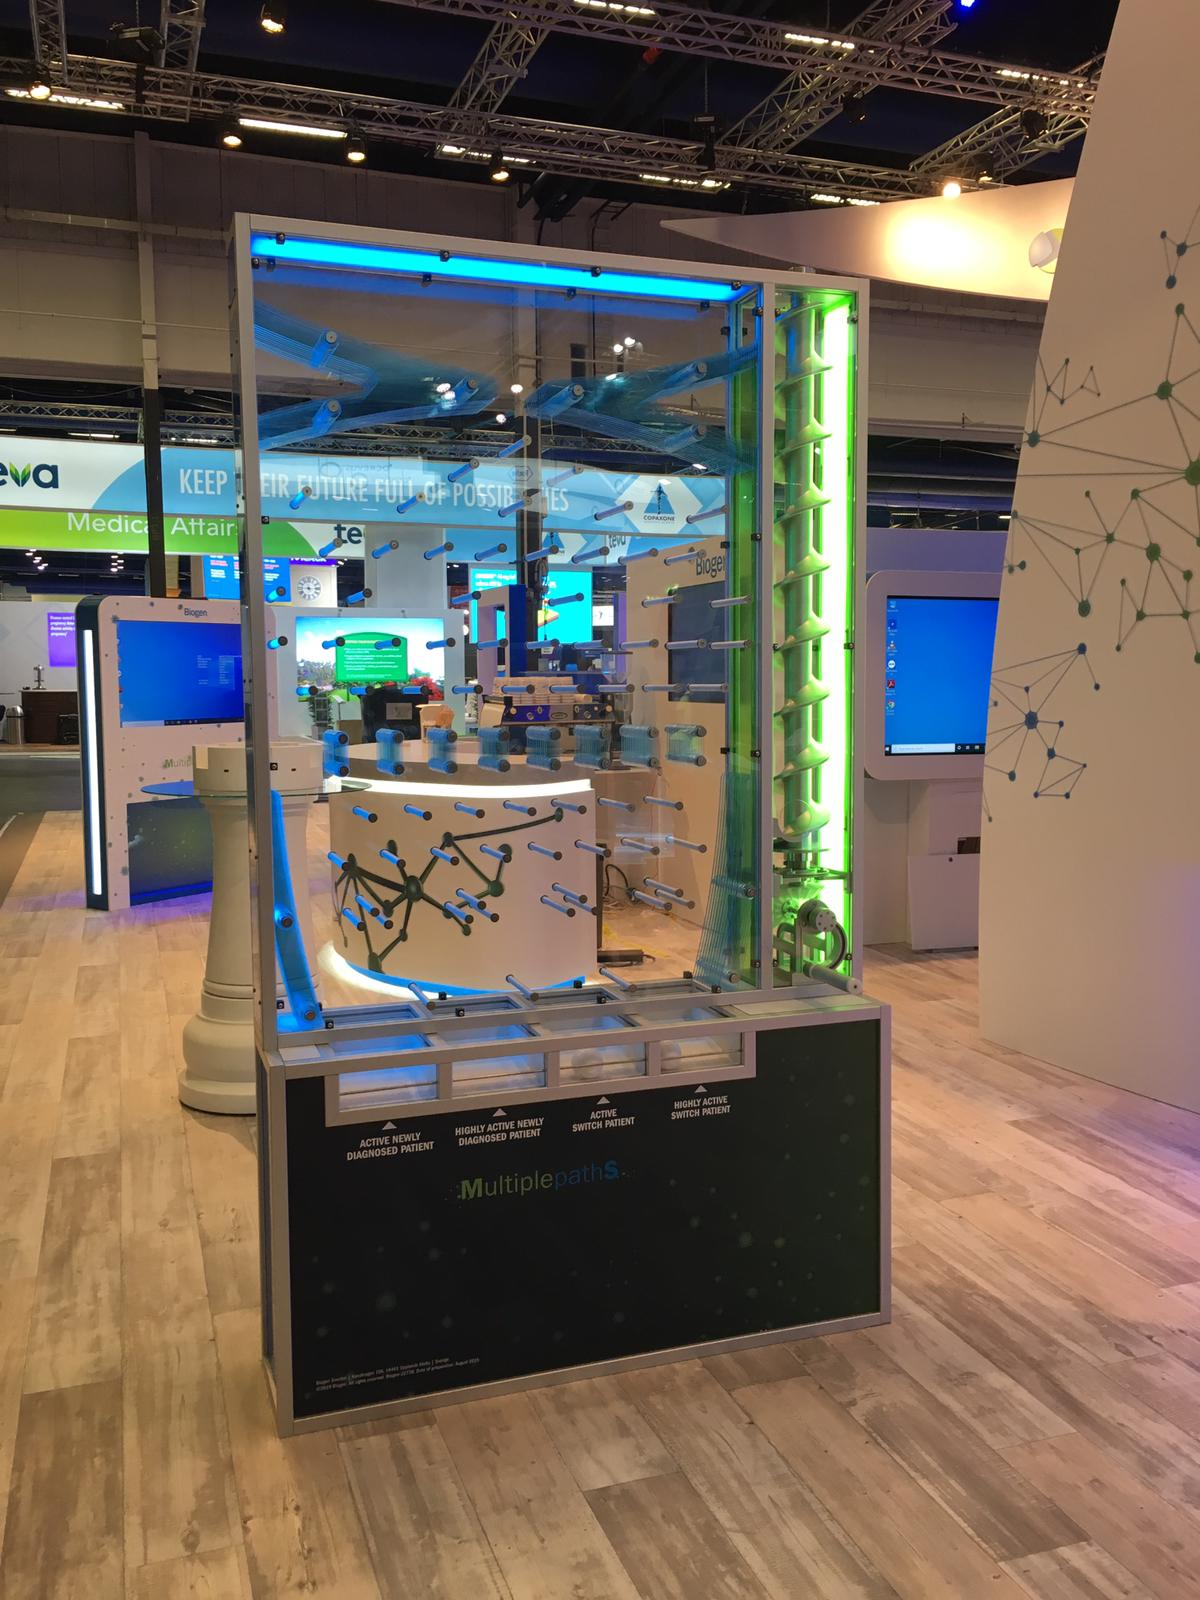 Our soft play balls used Atom for Biogen's exhibition game like pin ball